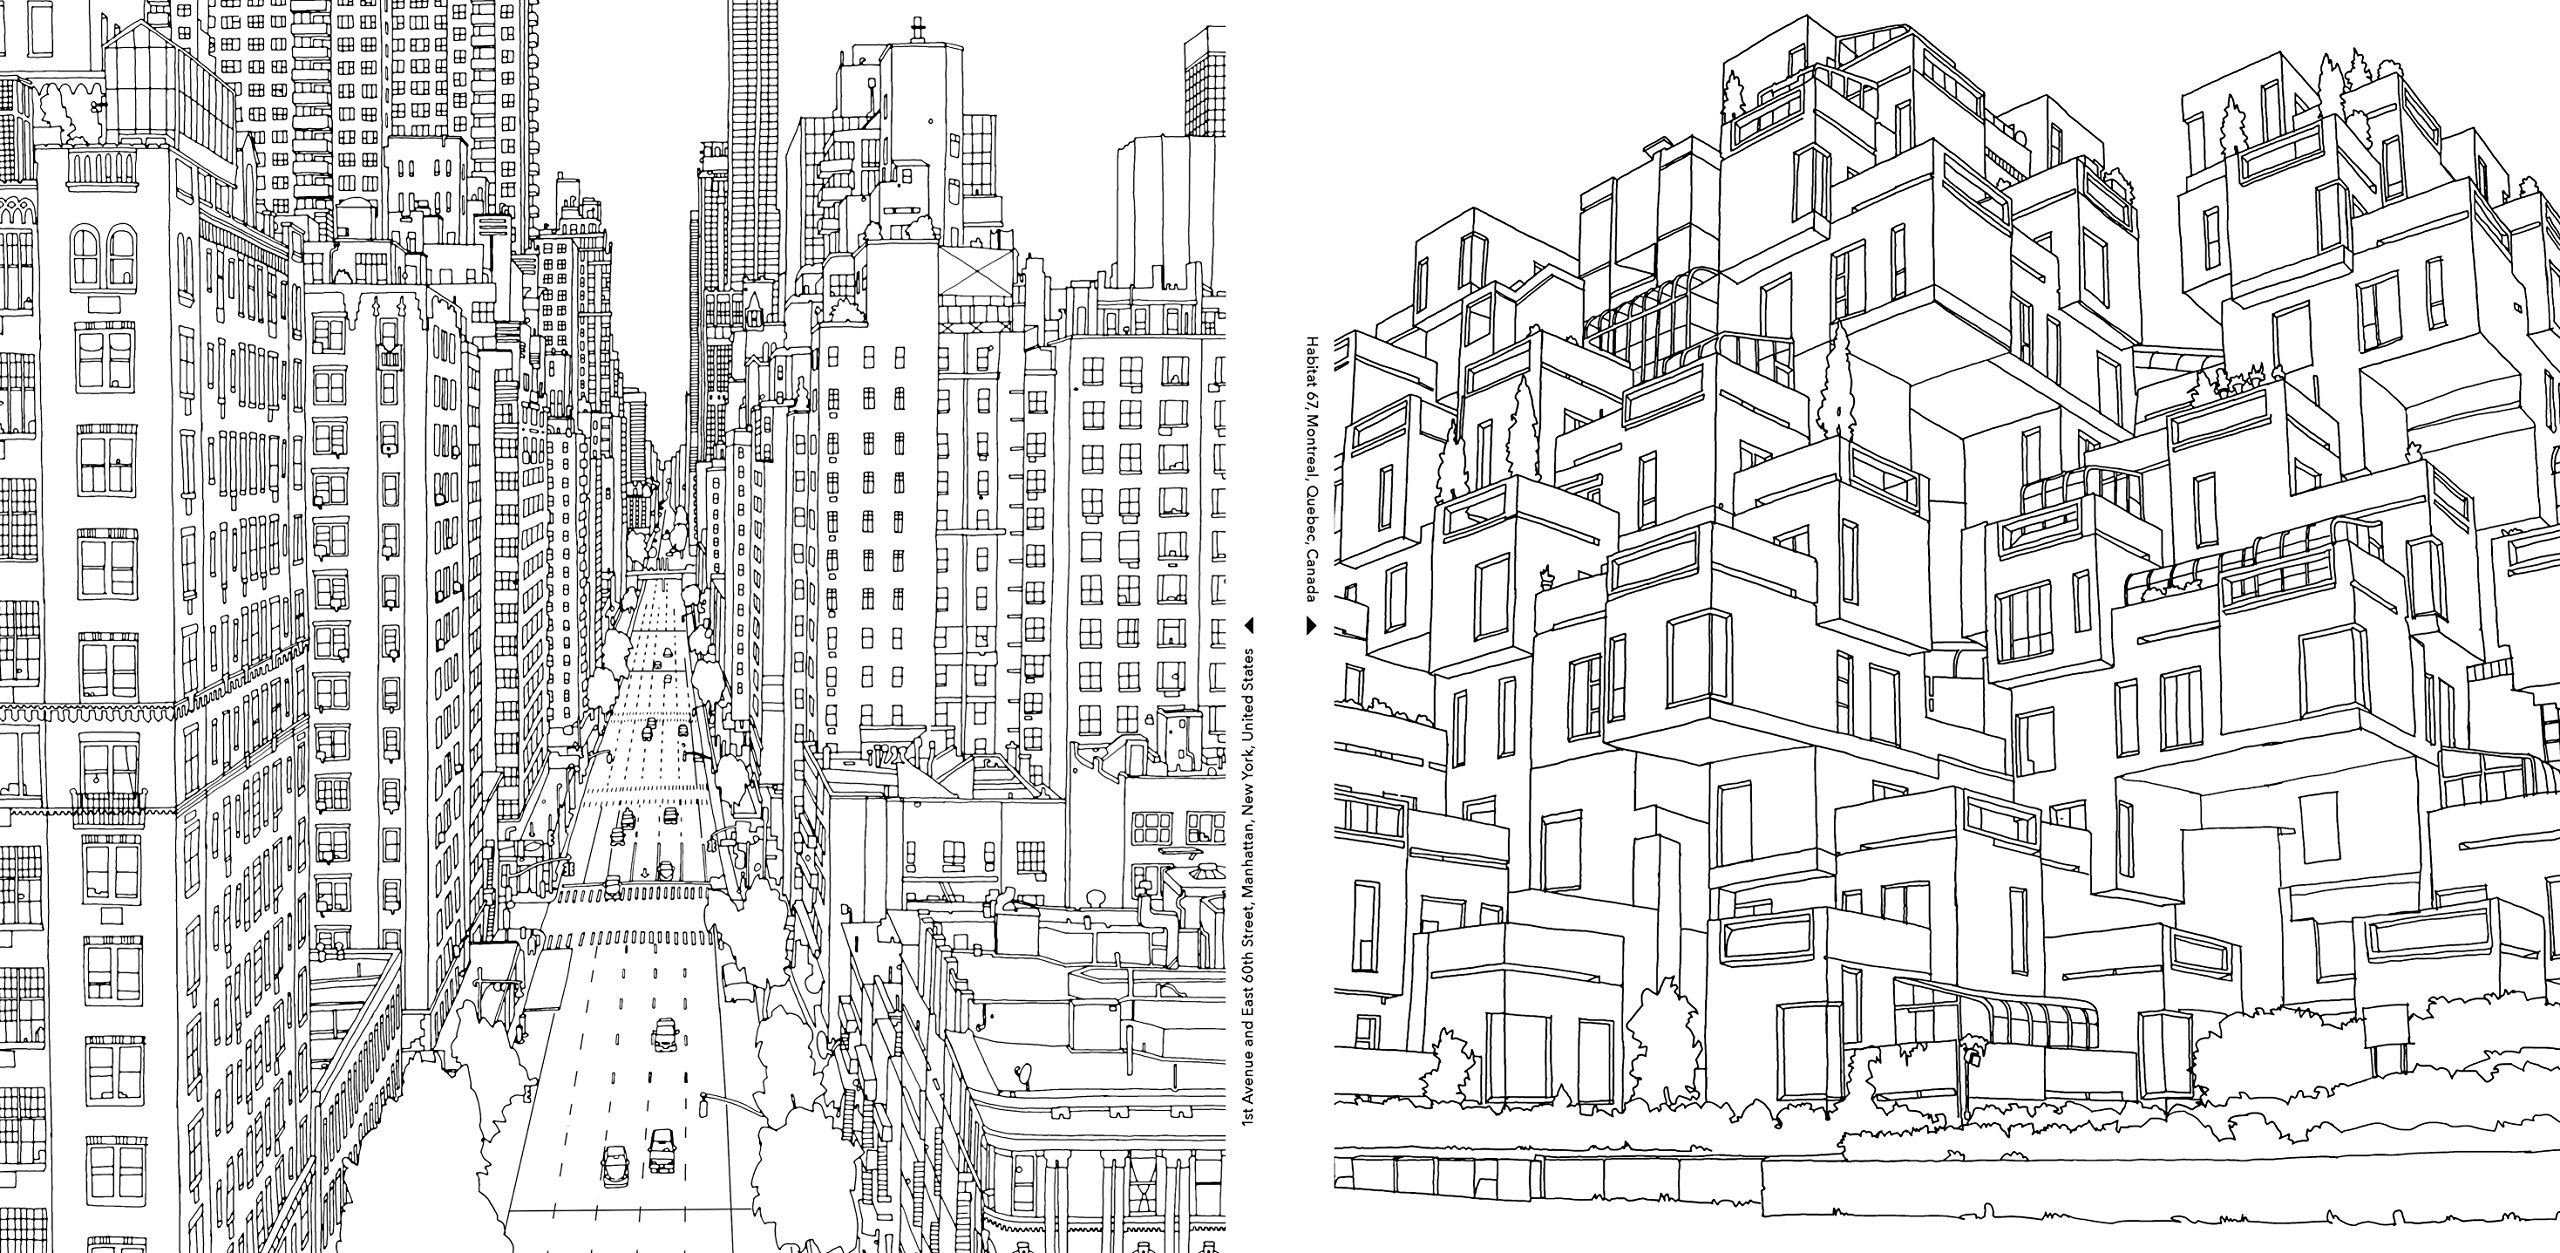 Free coloring pages new york city - Fantastic Cities A Coloring Book Of Amazing Places Real And Imagined Steve Mcdonald 0499995260320 Amazon Com Books